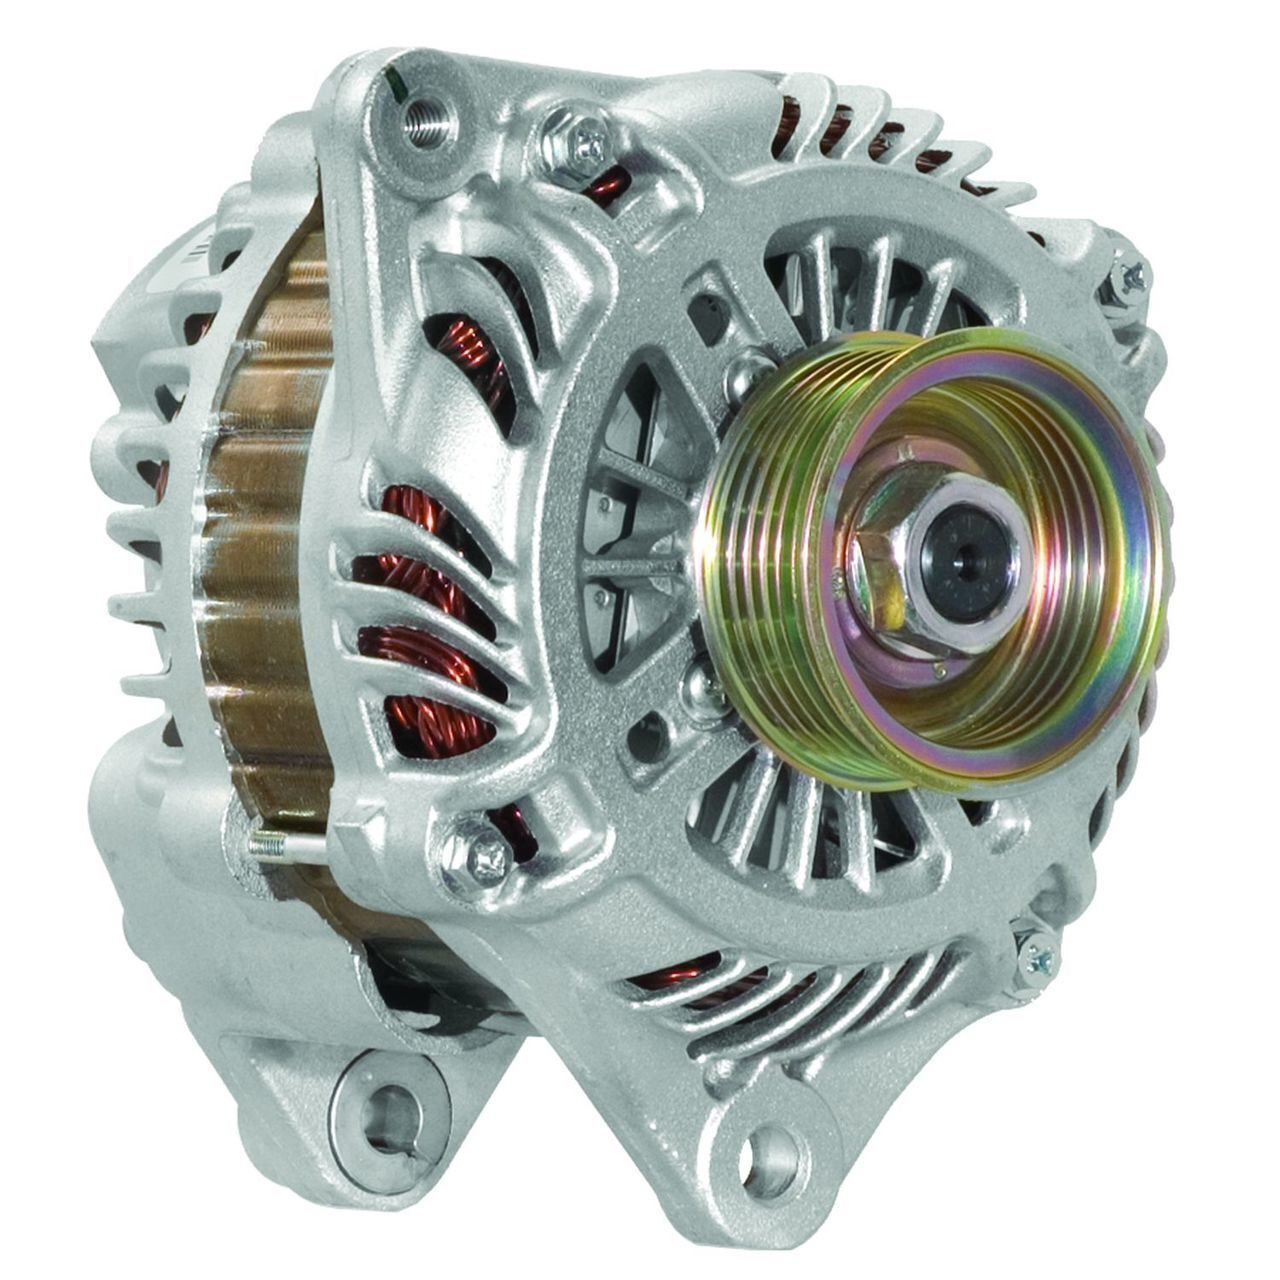 Acdelco 335 1306 Alternator For Your 2004 Infiniti G35